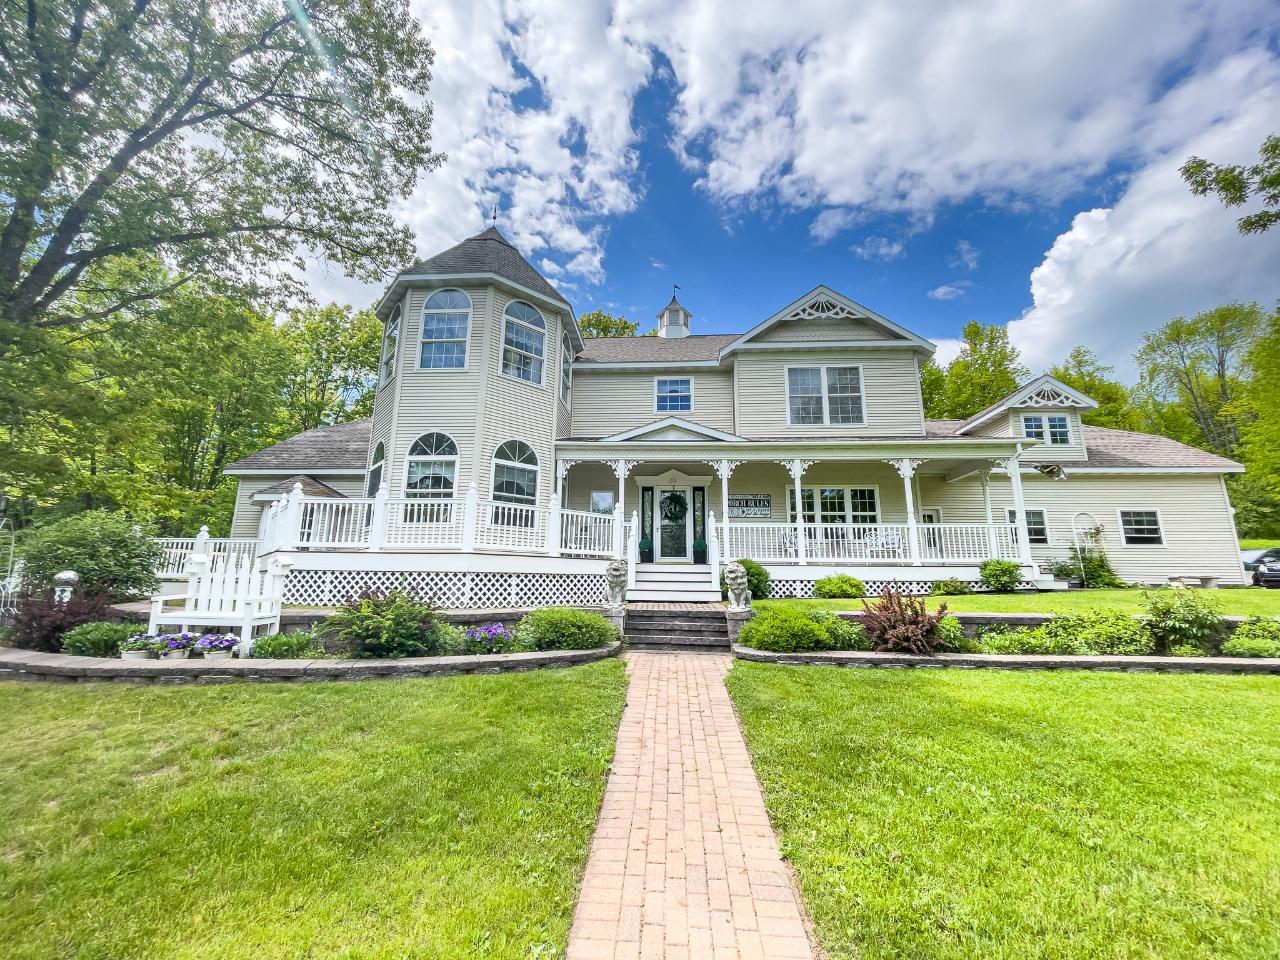 Tucked away on 20.45AC of wooded landscape & inspired by Victorian Home design, this custom-built 3bed/3ba masterpiece features dormers, classic wrap-around porch, decorative railings, ornate trim, stained glass additions, chandeliers, & two staircases. Every square foot exudes keen attention to detail & pride of ownership in this immaculate home. Enter & be met by the sprawling staircase leading to the impressive second-floor balcony. A sitting parlor w/huge bay windows adjoins the huge family room. Entertain in style in the formal dining room. A second staircase leads from the formal dining room to the master suite wing on the 2nd floor. This master suite includes huge hobby room/office/library, en suite bath w/jacuzzi tub, shower, double vanity, & sleeping area w/sitting room overlooking the property. Classic design, quality construction, abundant privacy & a gorgeous landscape all come together to provide an ideal home for luxurious living and entertaining! Square footage is an estimate, buyer to verify. Acreage is based off of Gogebic County Tax Roll. Buyer to verify with MI licensed surveyor.